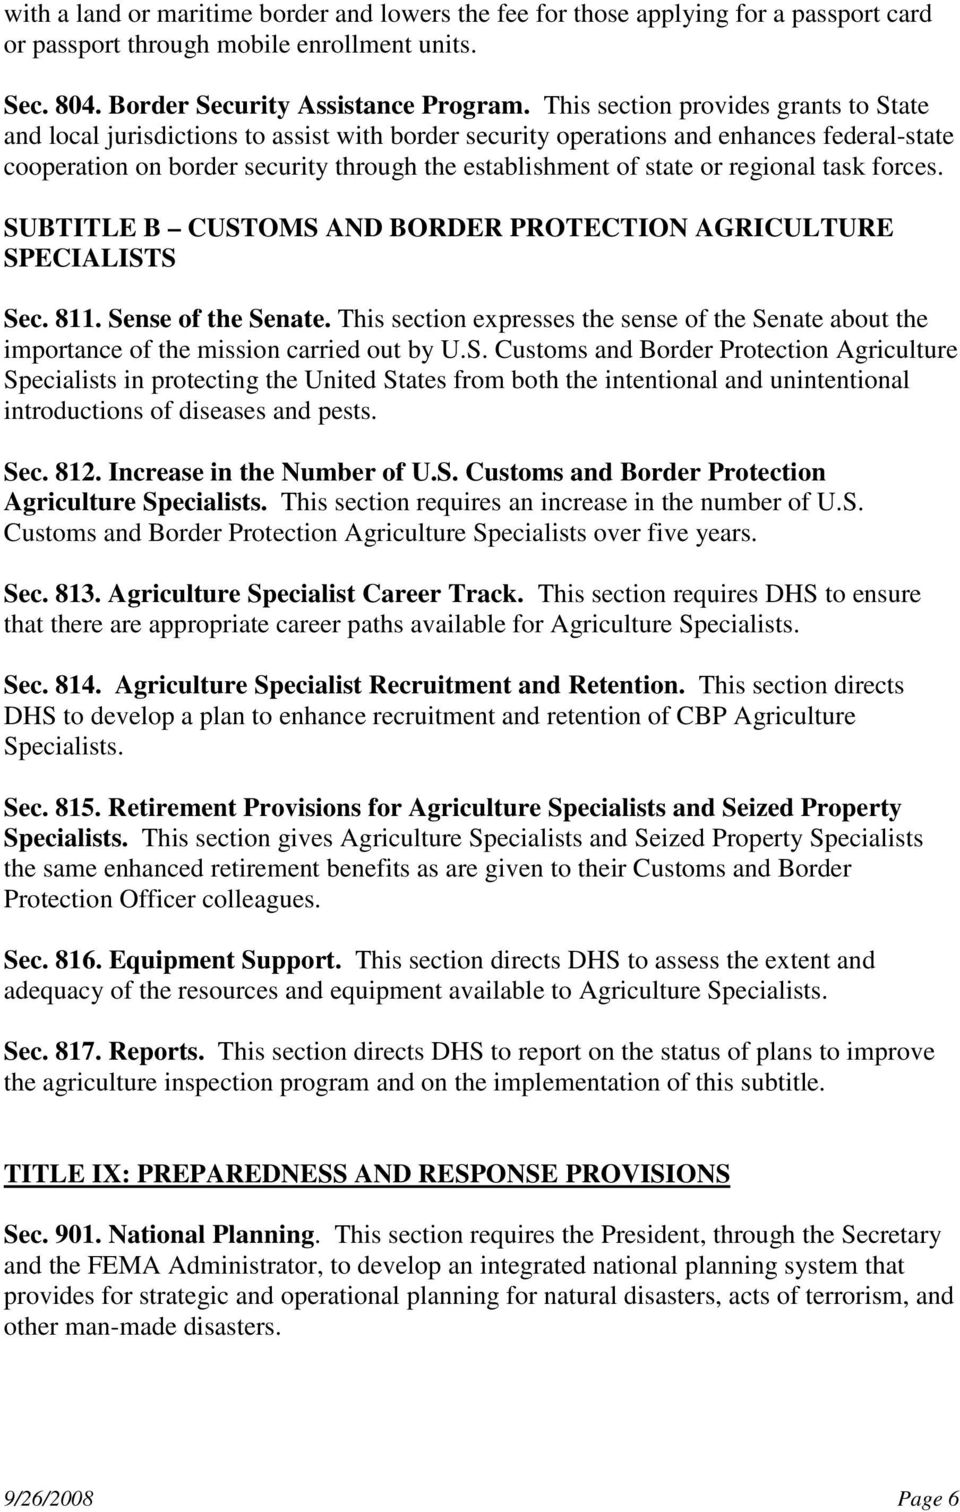 regional task forces. SUBTITLE B CUSTOMS AND BORDER PROTECTION AGRICULTURE SPECIALISTS Sec. 811. Sense of the Senate.